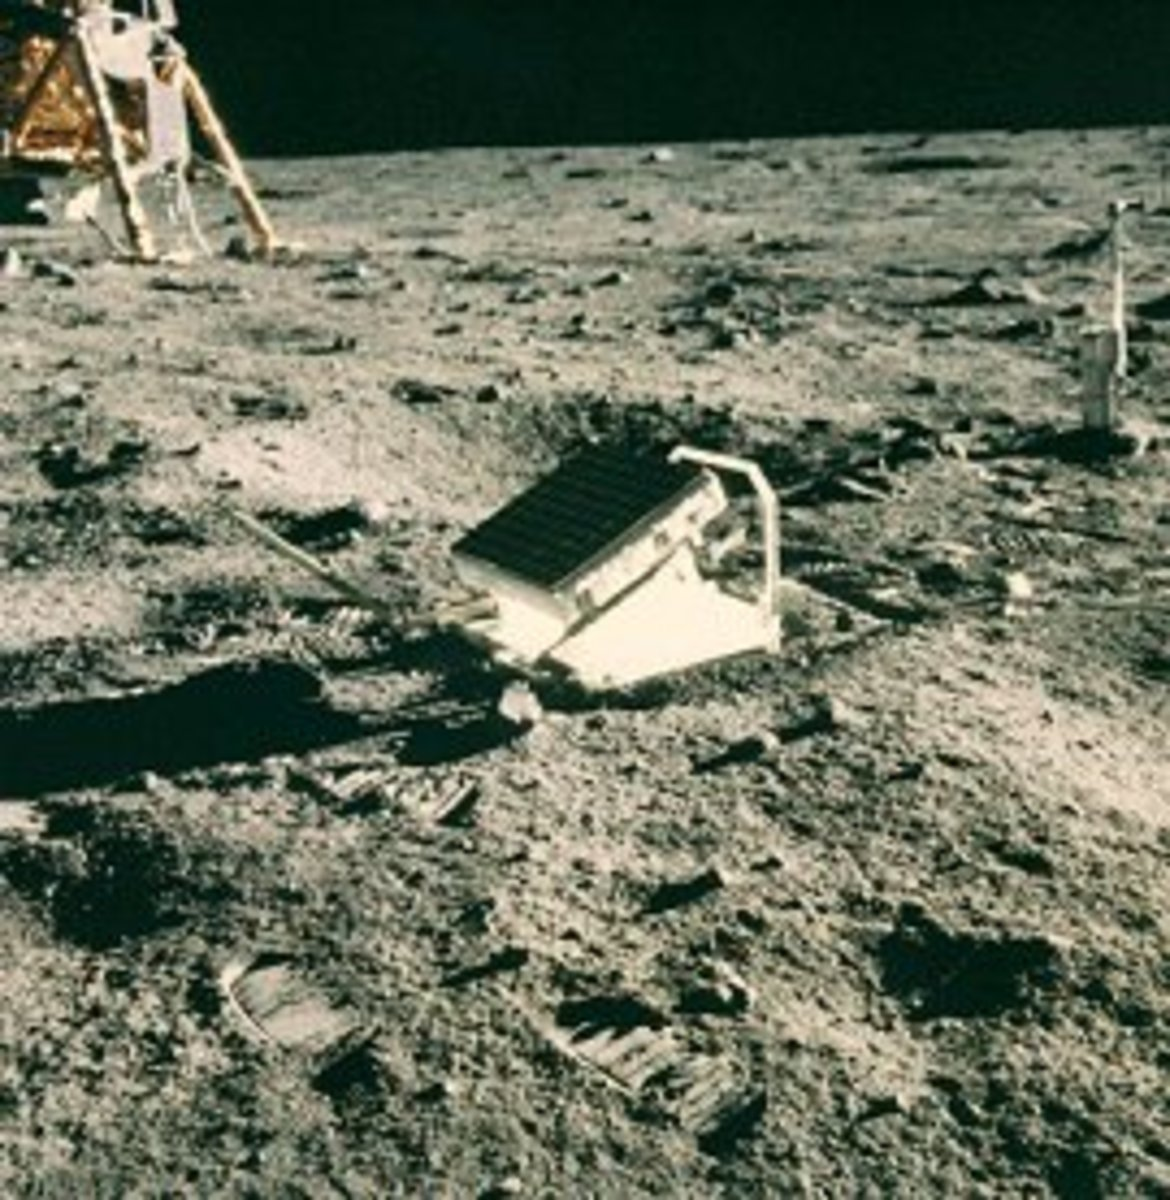 Mirrors on the moon. Lunar laser ranging retroreflector array.